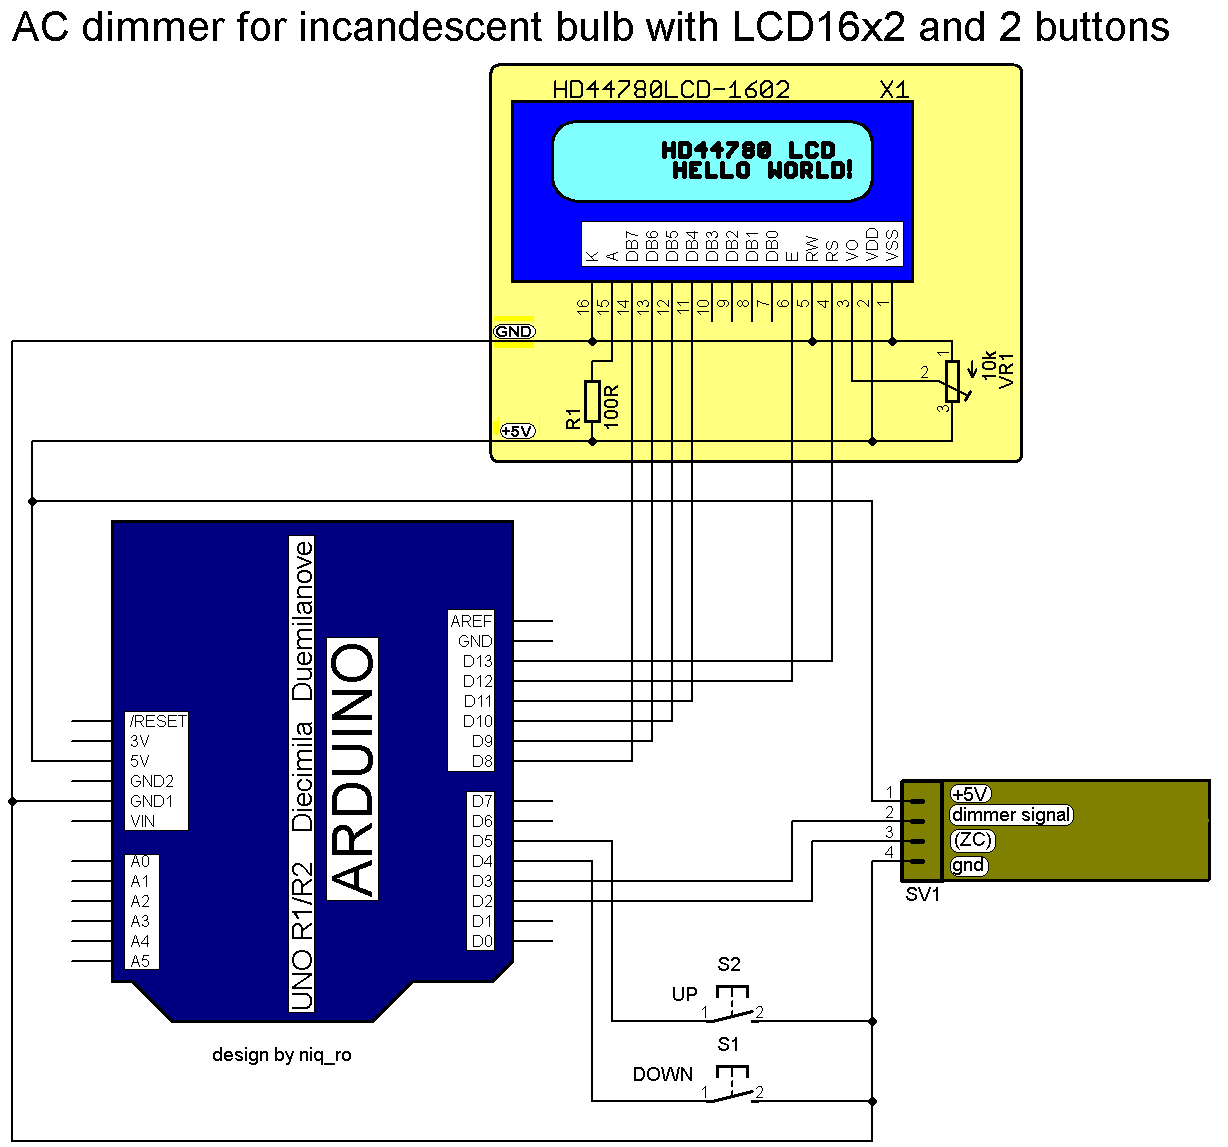 ac_dimmer1_schematic_arduino_2butons_LCD16x2_rev1 arduino tehniq ac light dimmer with arduino Lutron LED Dimmer Wiring-Diagram at gsmportal.co